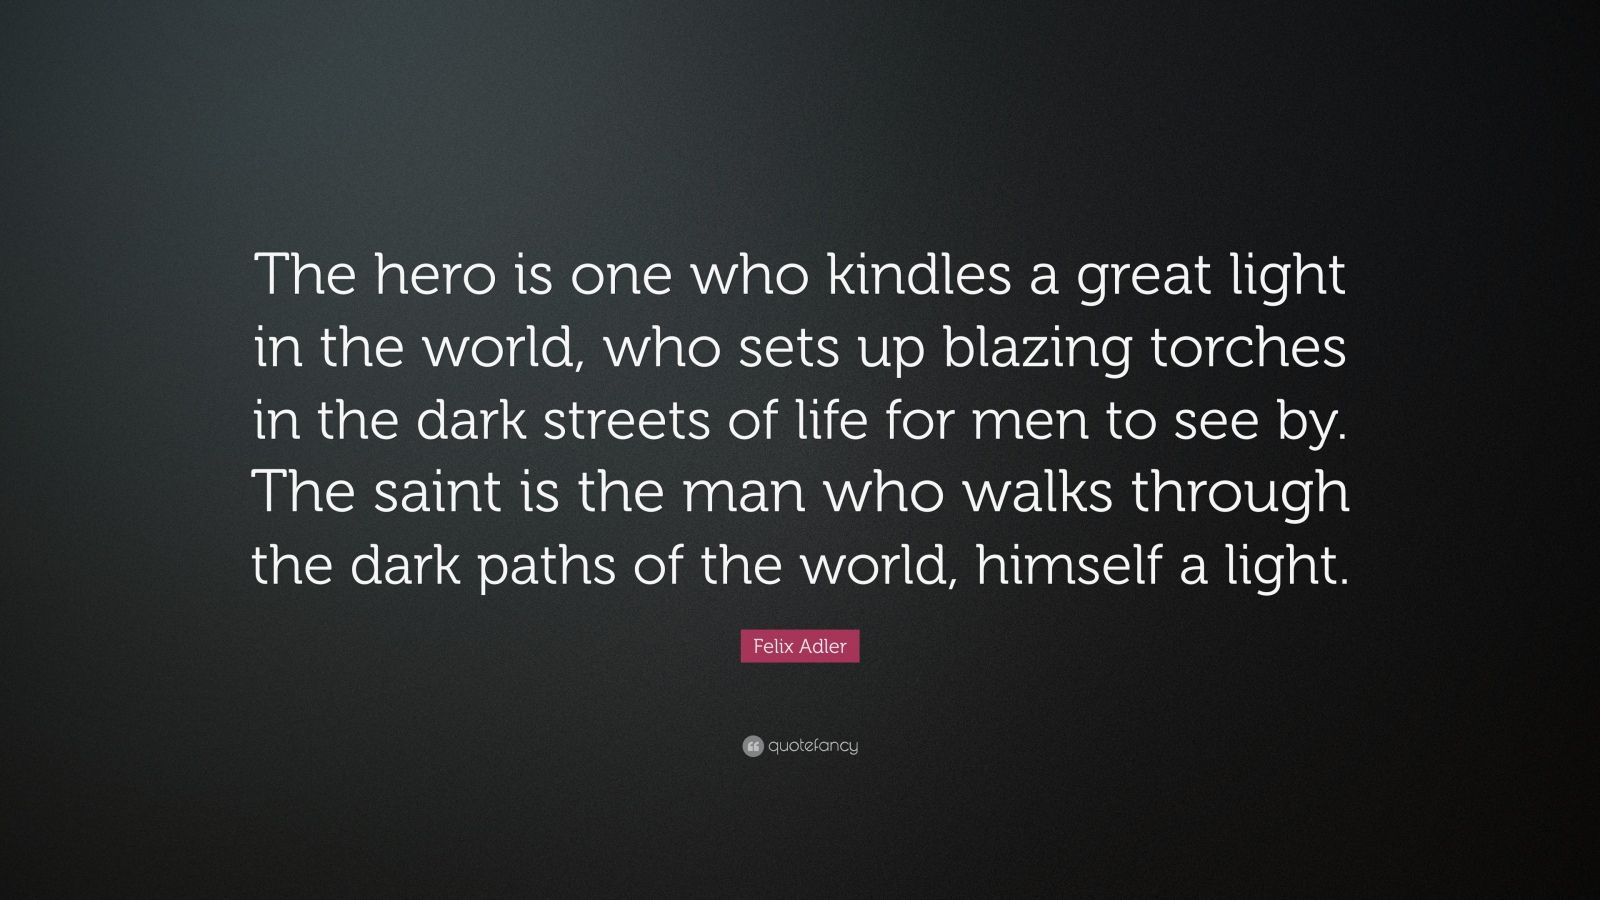 """Felix Adler Quote: """"The hero is one who kindles a great light in the world, who sets up blazing torches in the dark streets of life for men to see by. The saint is the man who walks through the dark paths of the world, himself a light."""""""